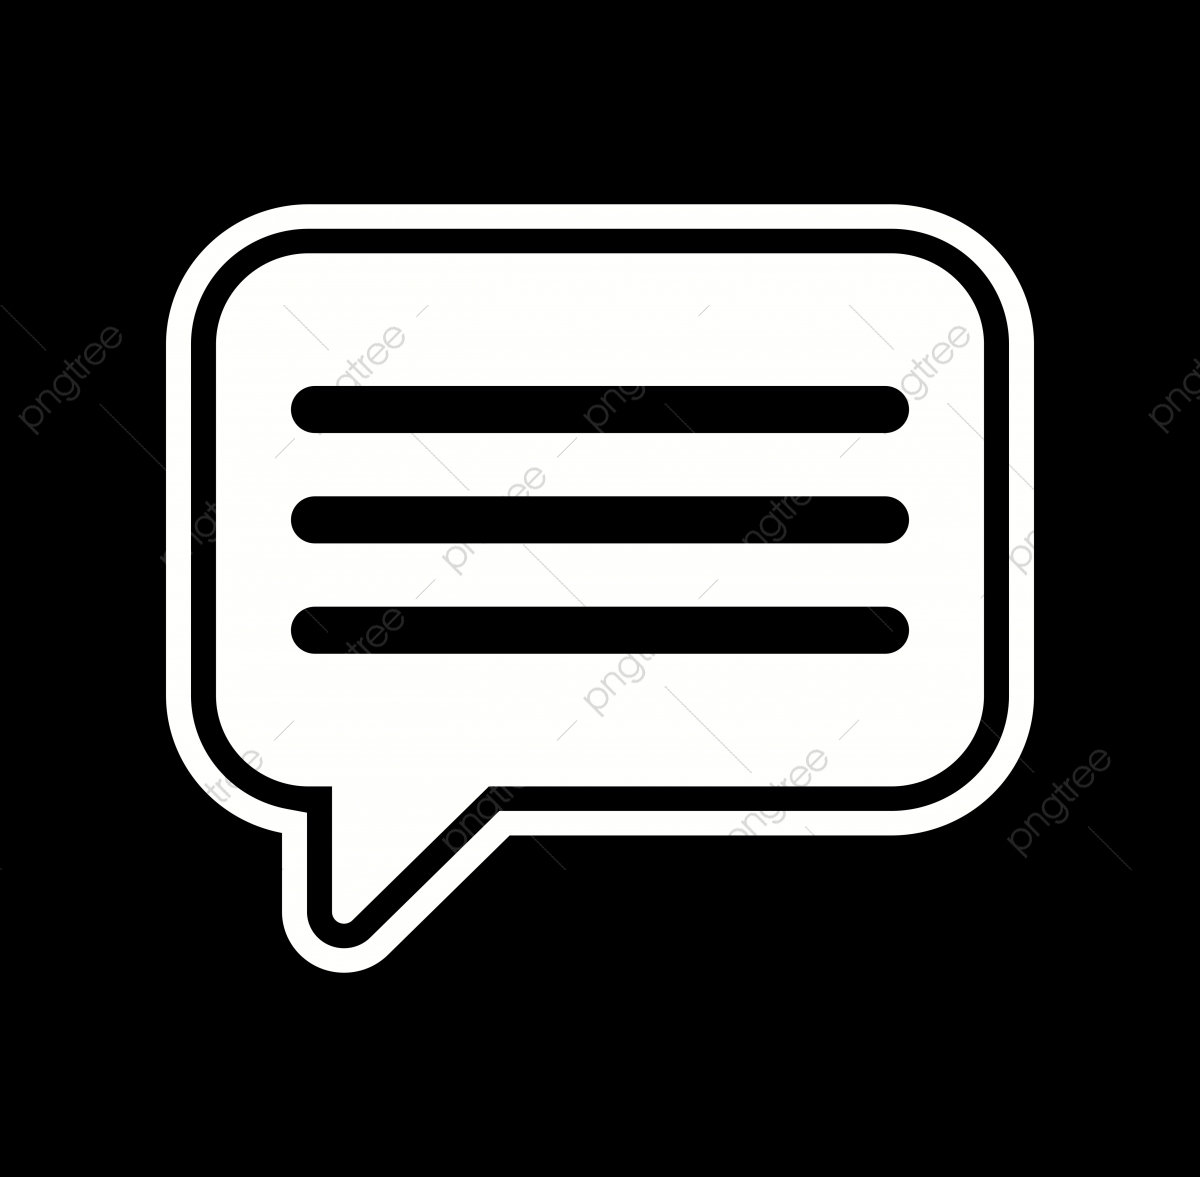 typing icon design typing icon chat icon comment icon png and vector with transparent background for free download https pngtree com freepng typing icon design 4273243 html